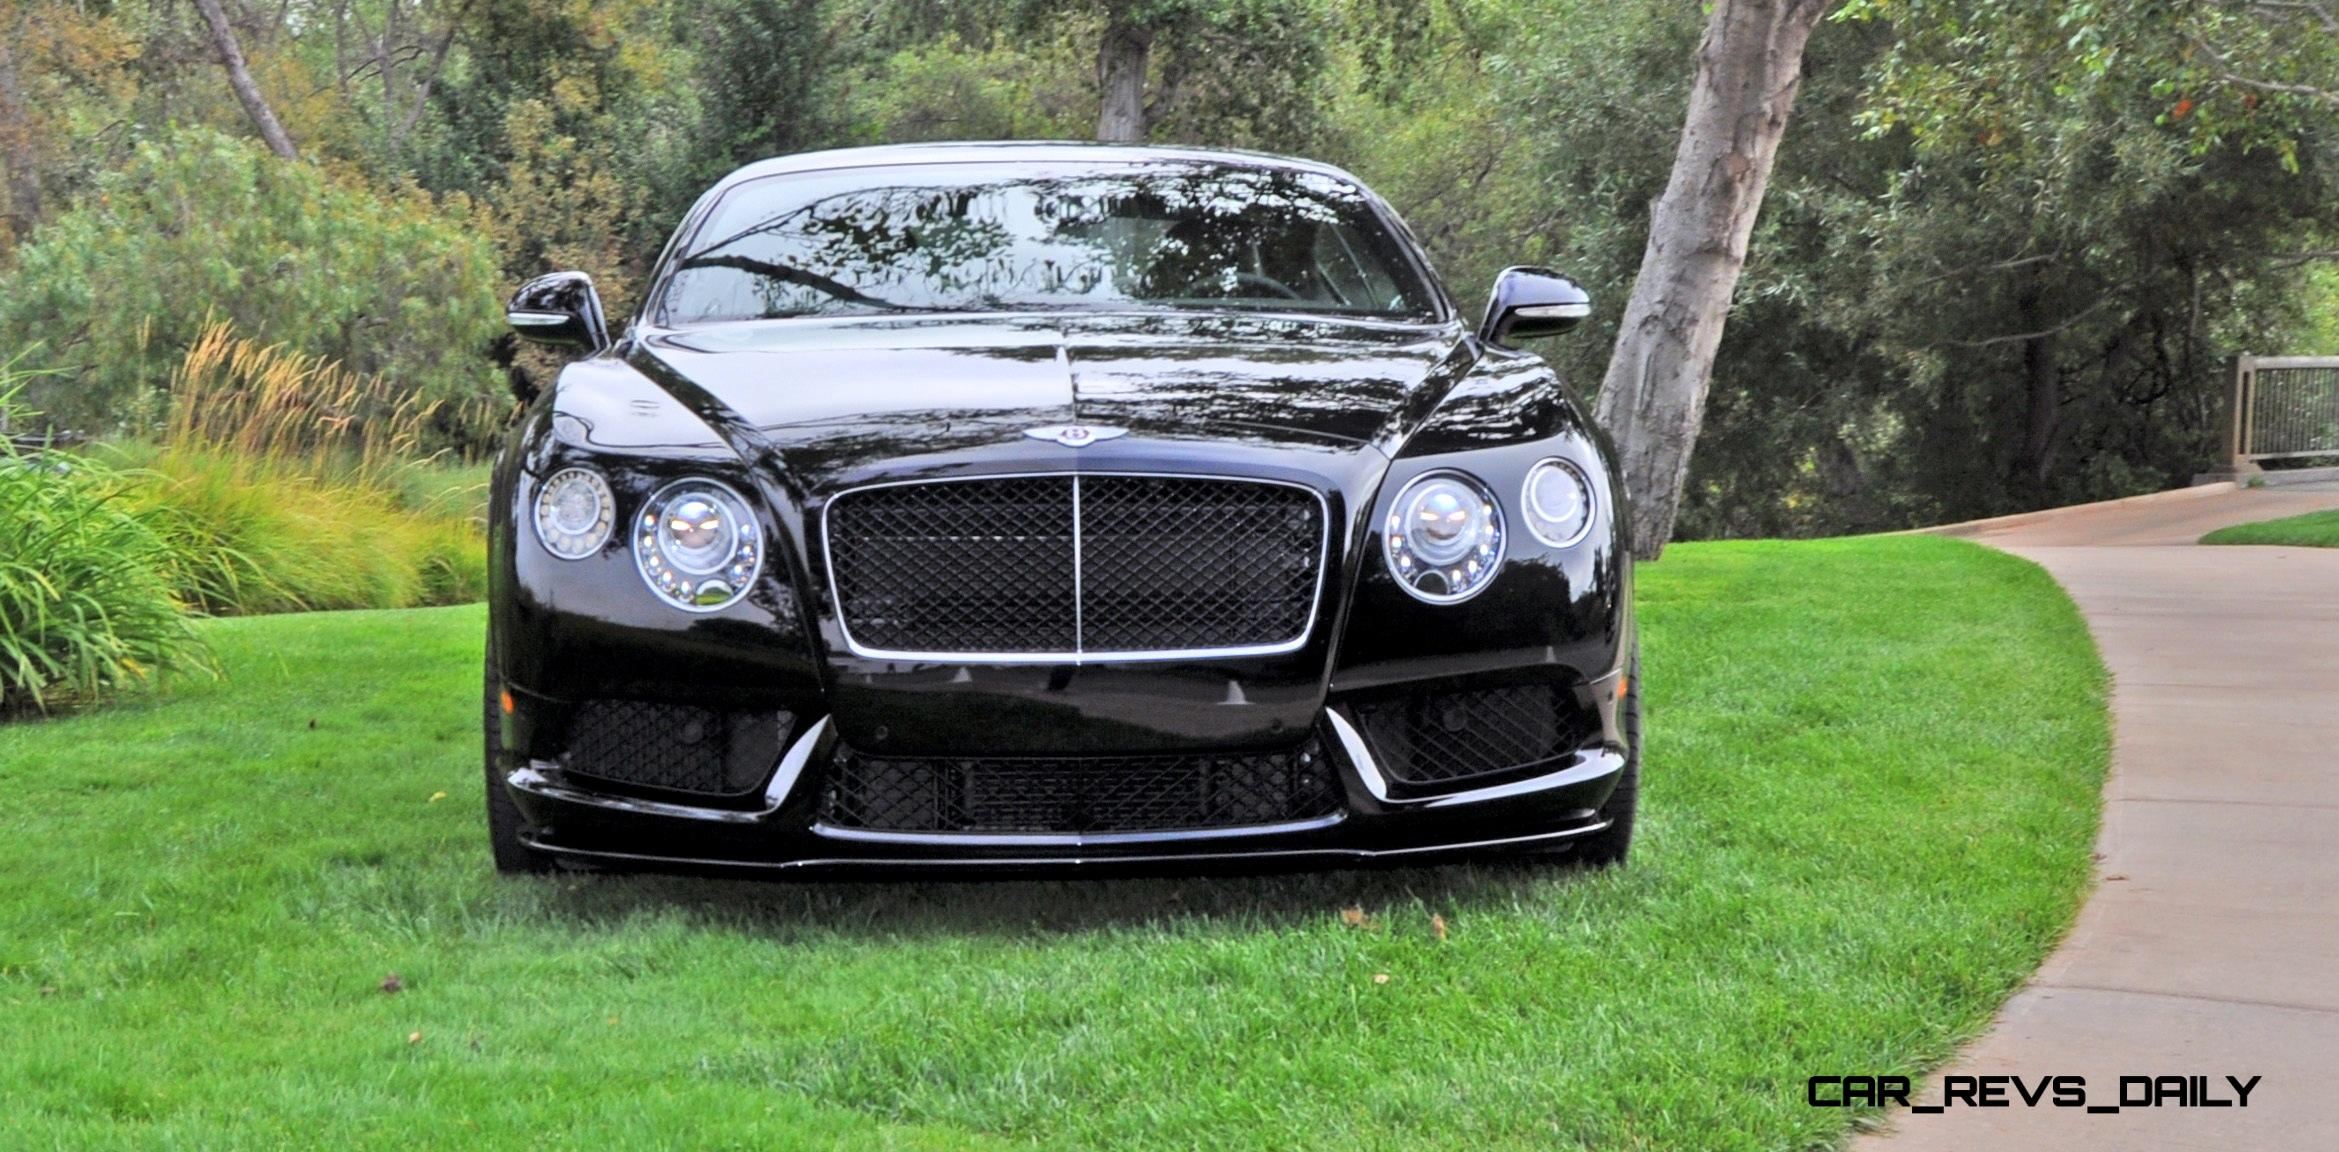 Merveilleux Car Revs Daily.com 2015 Bentley Continental GT V8S Is Stunning In Black  Crystal Paintwork 6